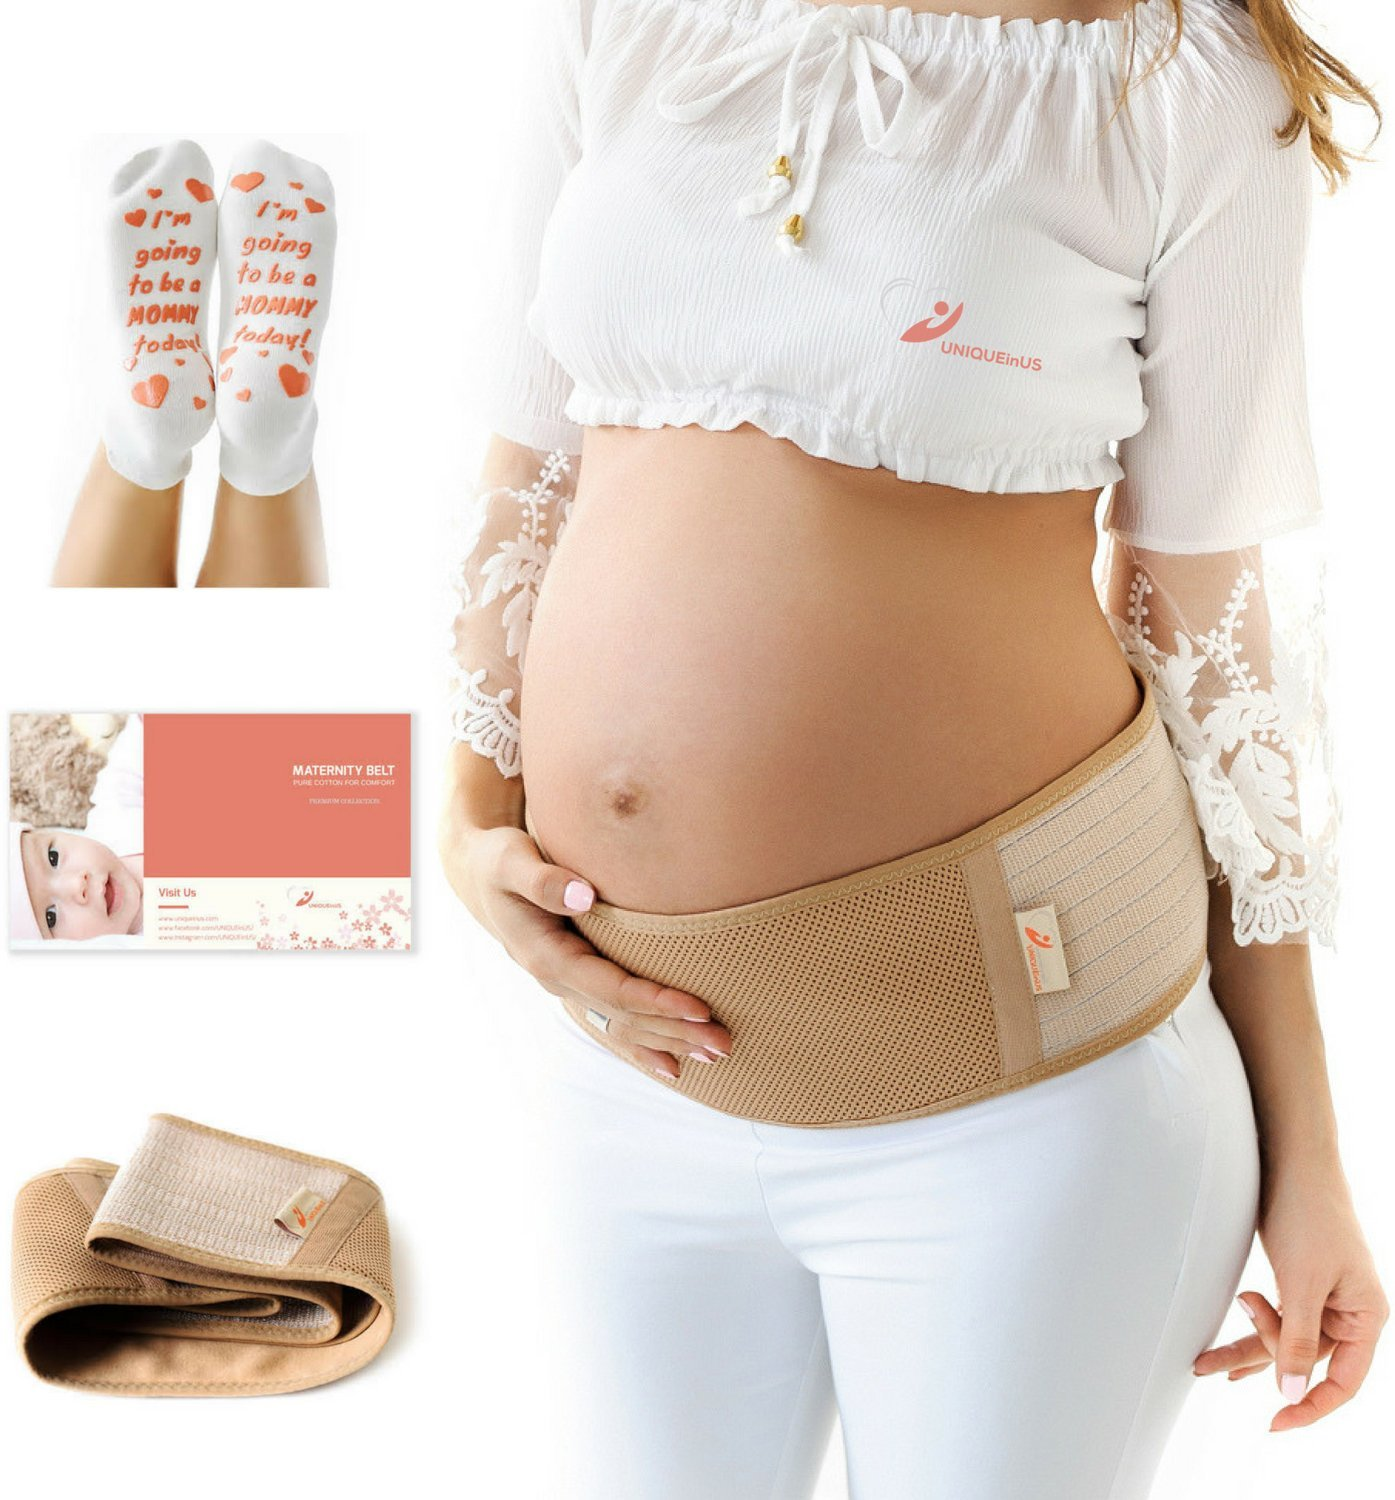 UNIQUEinUS Maternity Belt, Breathable Belly Band for Pregnancy Support: Hip, Pelvic and Lower Back Pain Relief. Adjustable Pregnancy Belt and Labor Socks Bonus. Abdominal Binder One Size, Beige